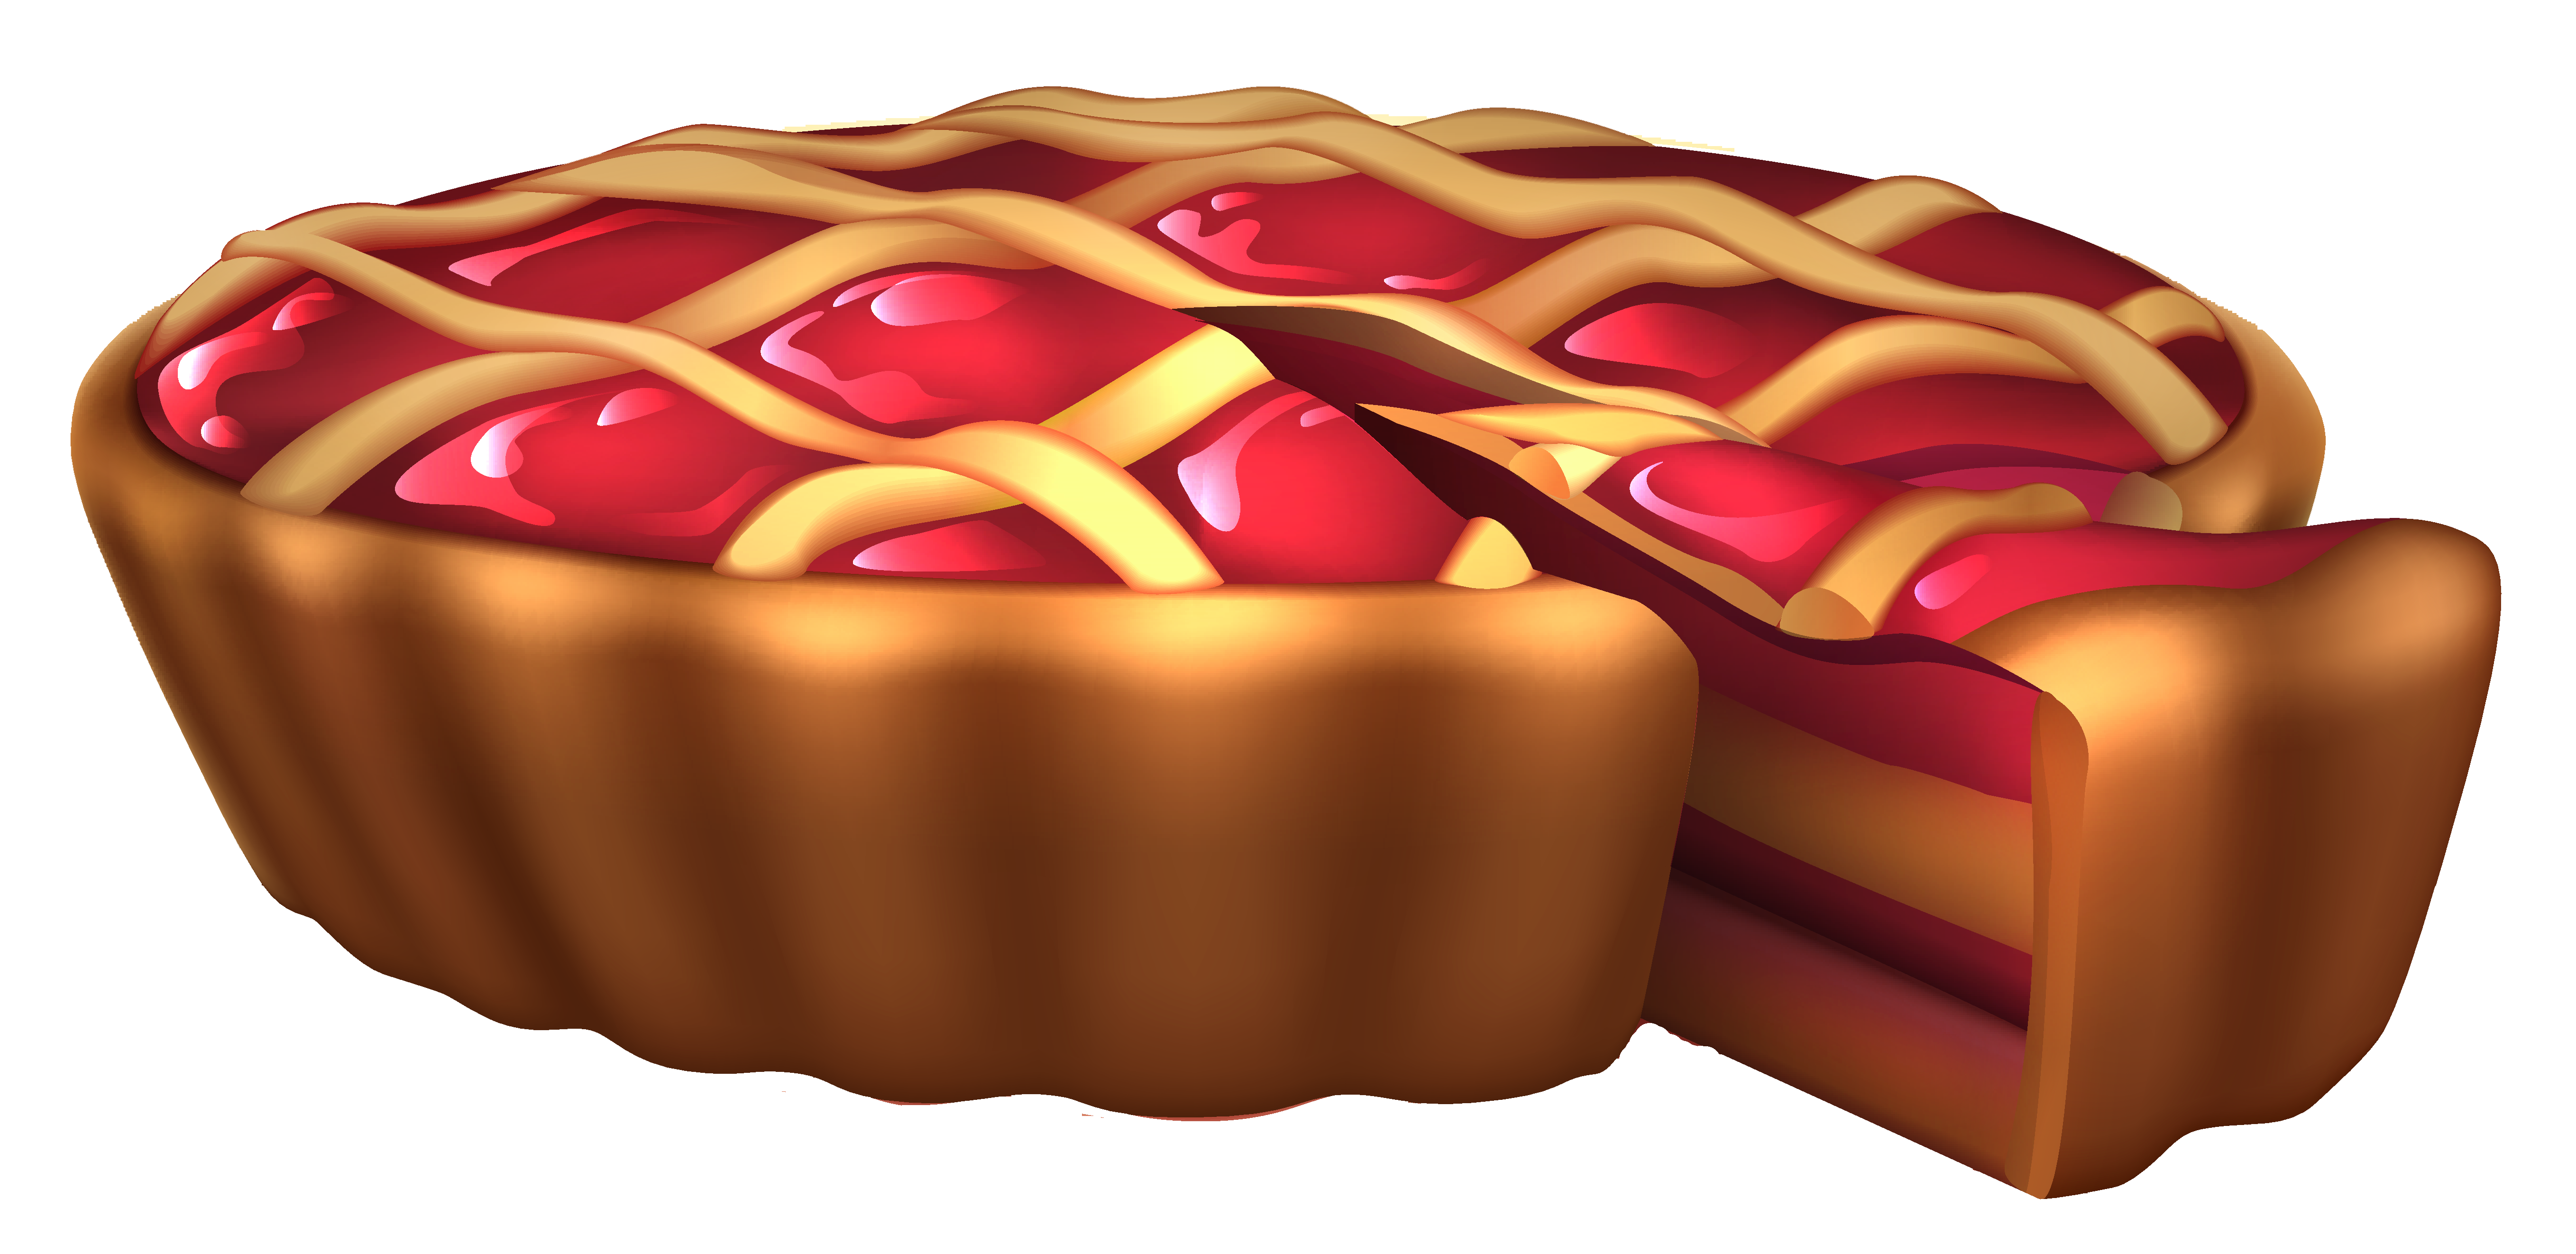 Cherry png picture gallery. Pie clipart